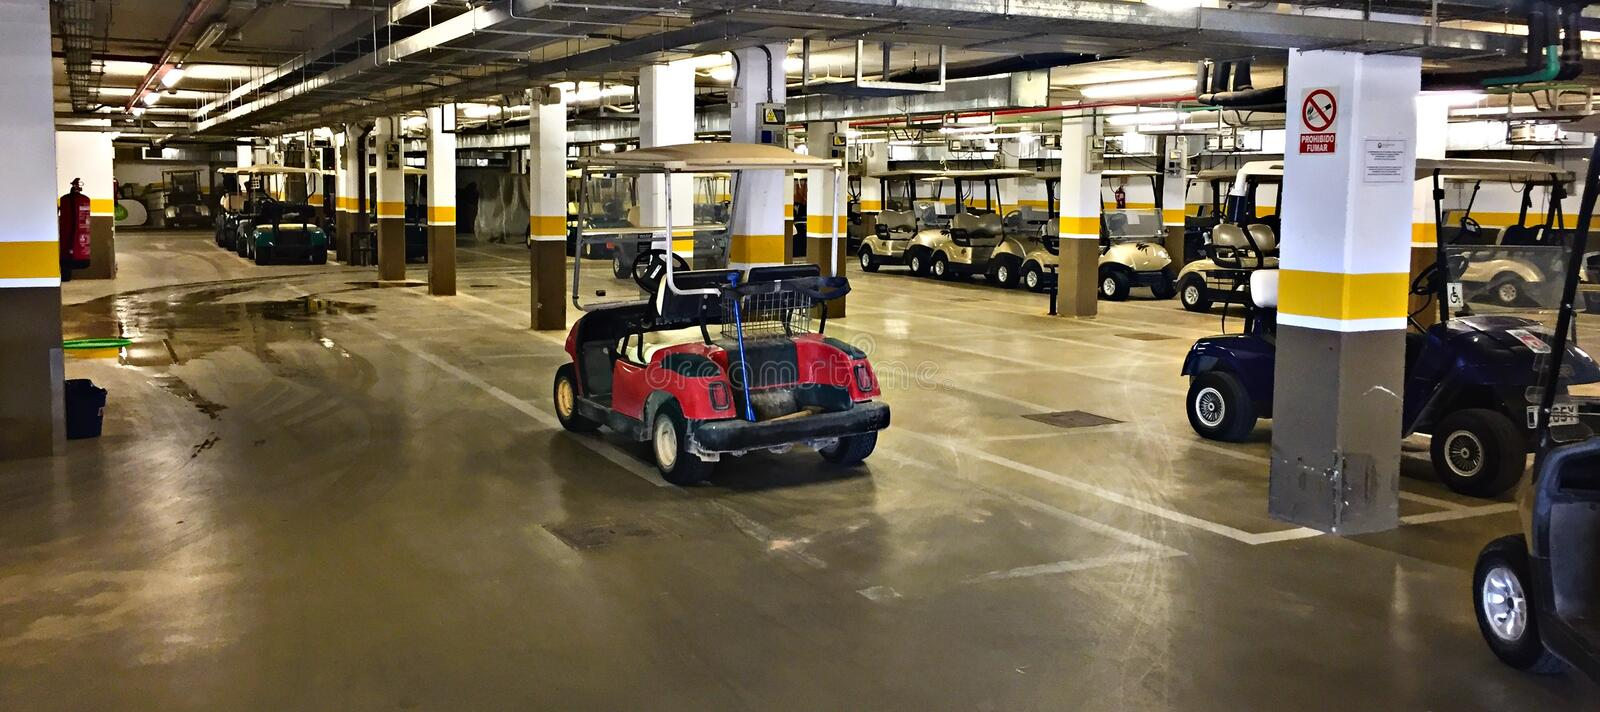 Underground golf buggy parking in Spain royalty free stock photos